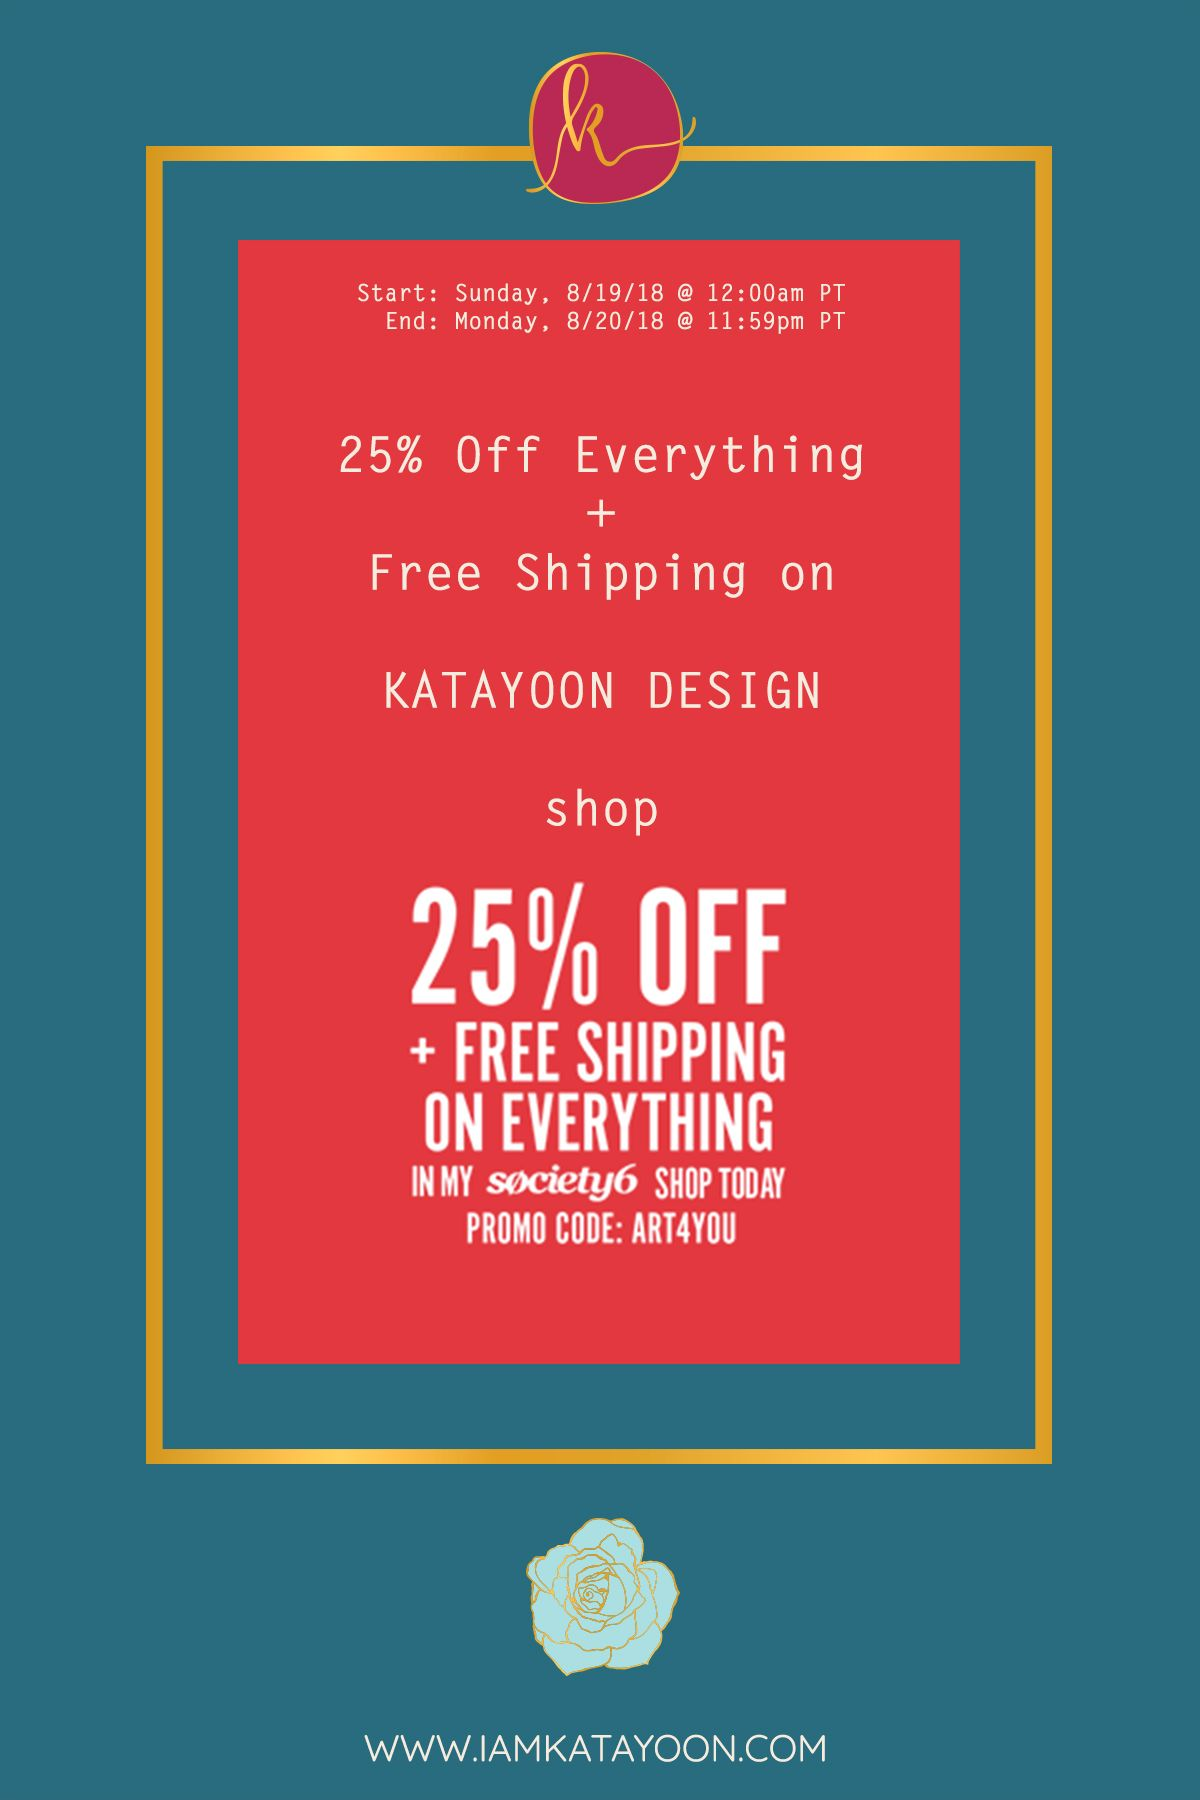 MAJOR END-OF-SUMMER SALE! 25% OFF + FREE SHIPPING ON EVERYTHING on ...